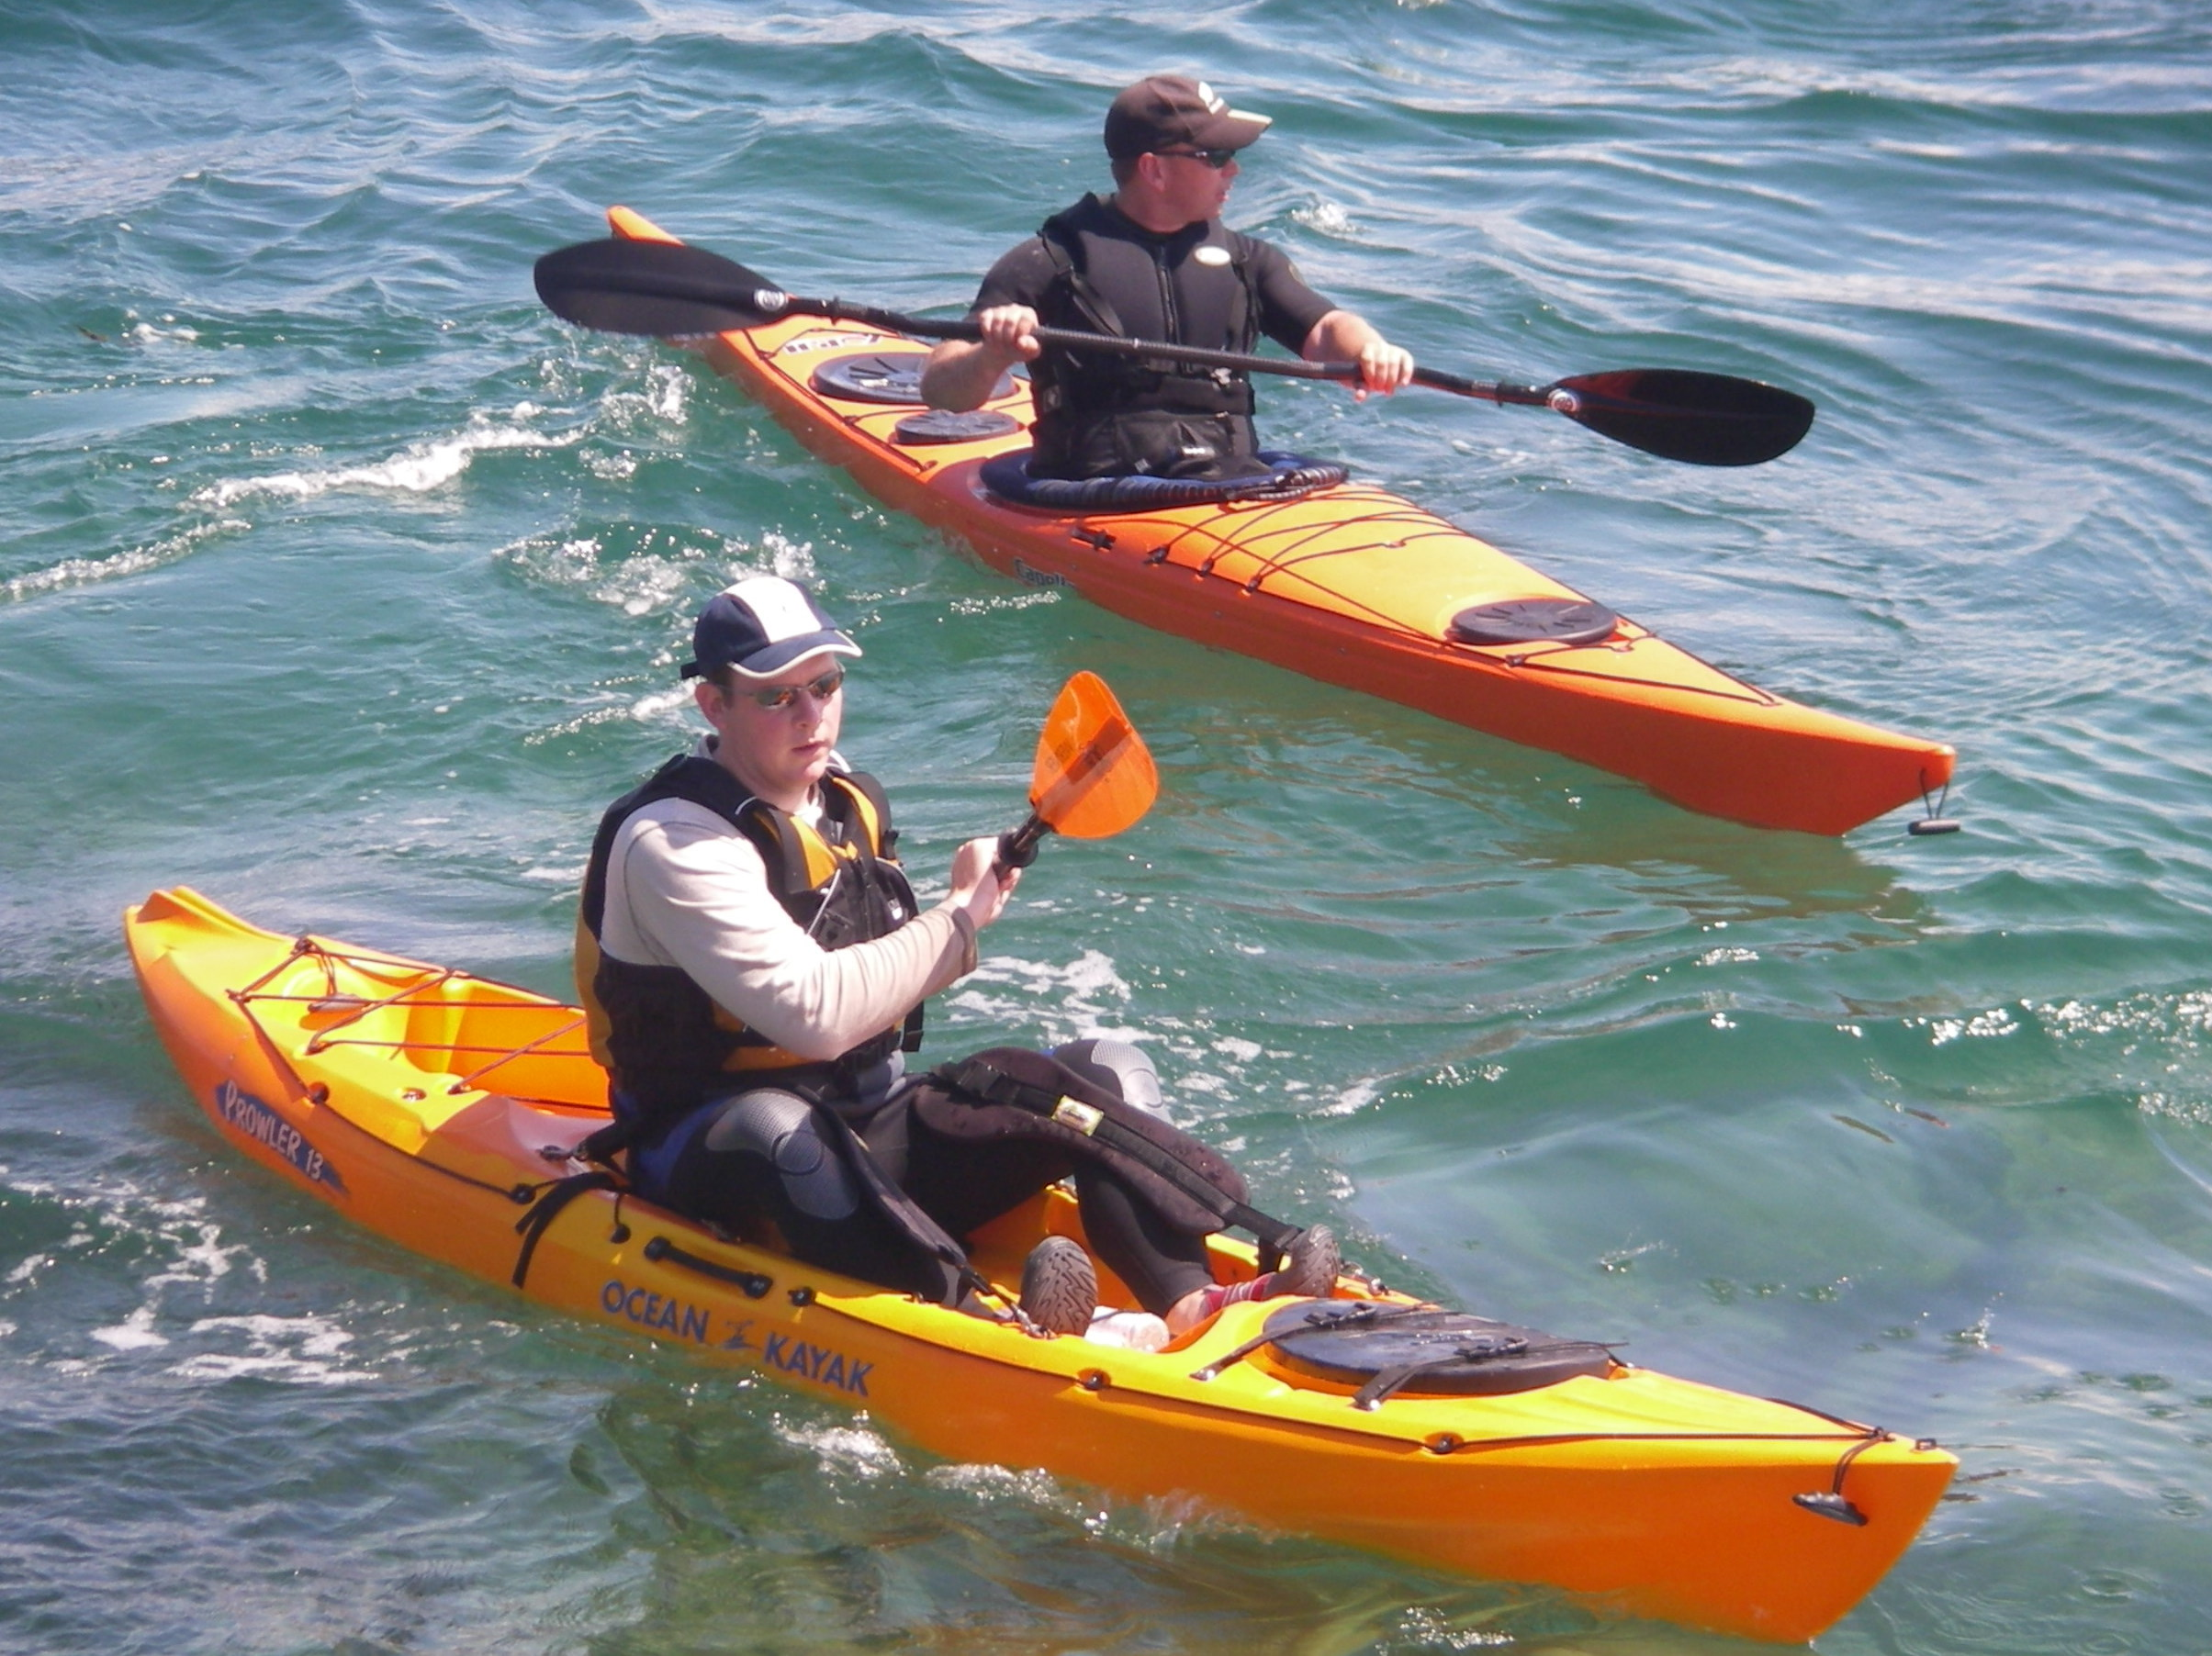 Kayak Sport Competition 2269.84 Kb